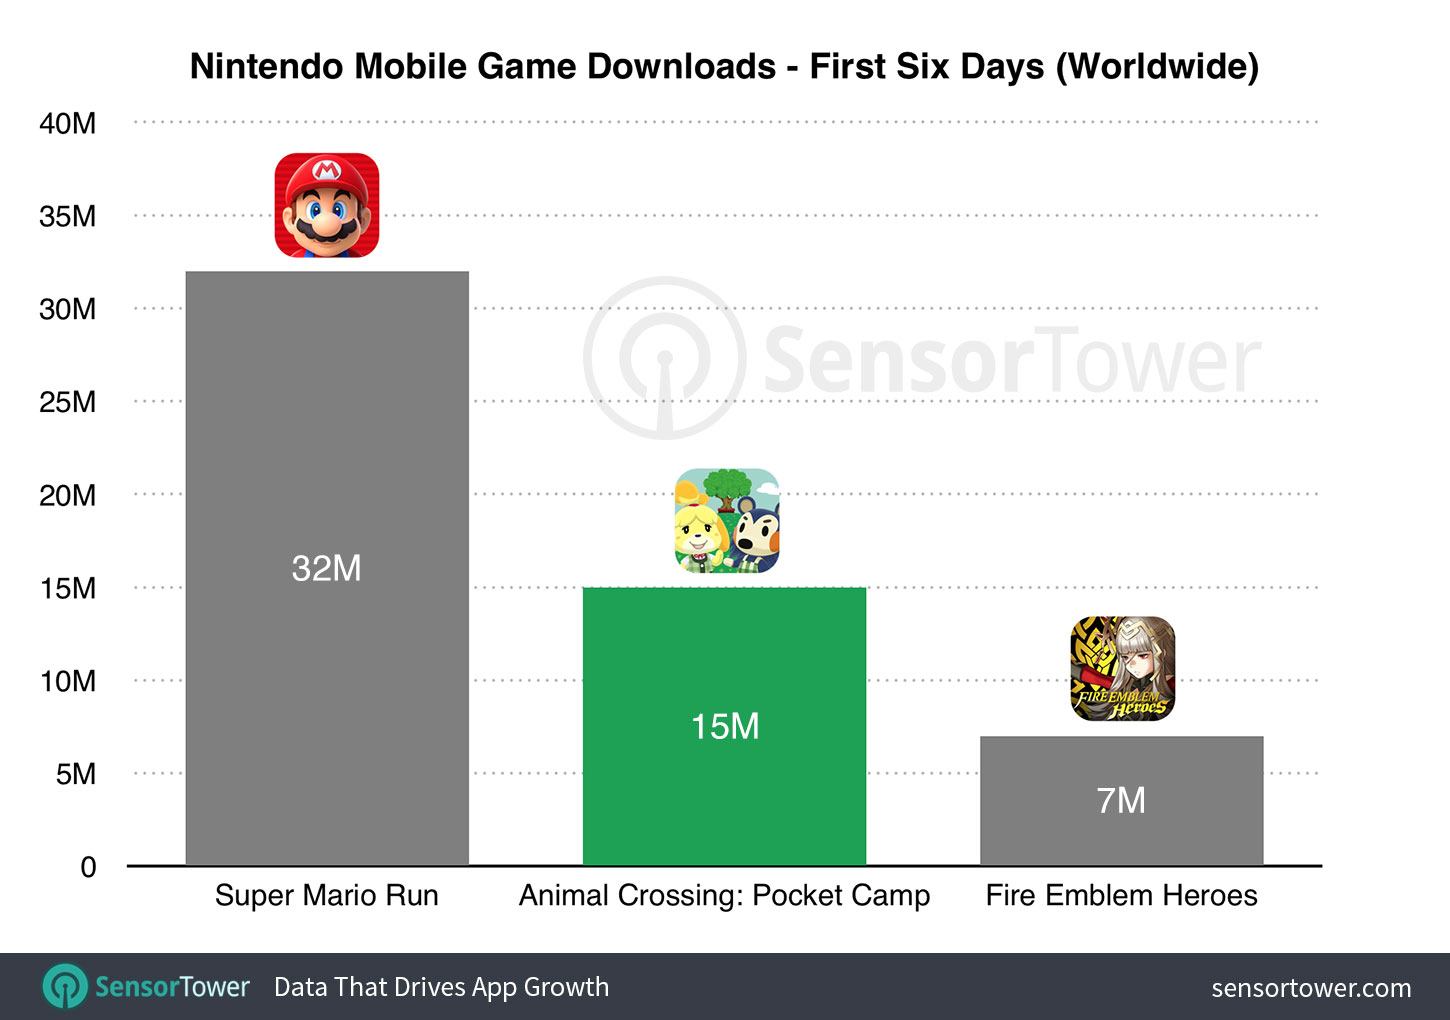 First six day downloads of Animal Crossing: Pocket Camp compared to Super Mario Run and Fire Emblem Heroes